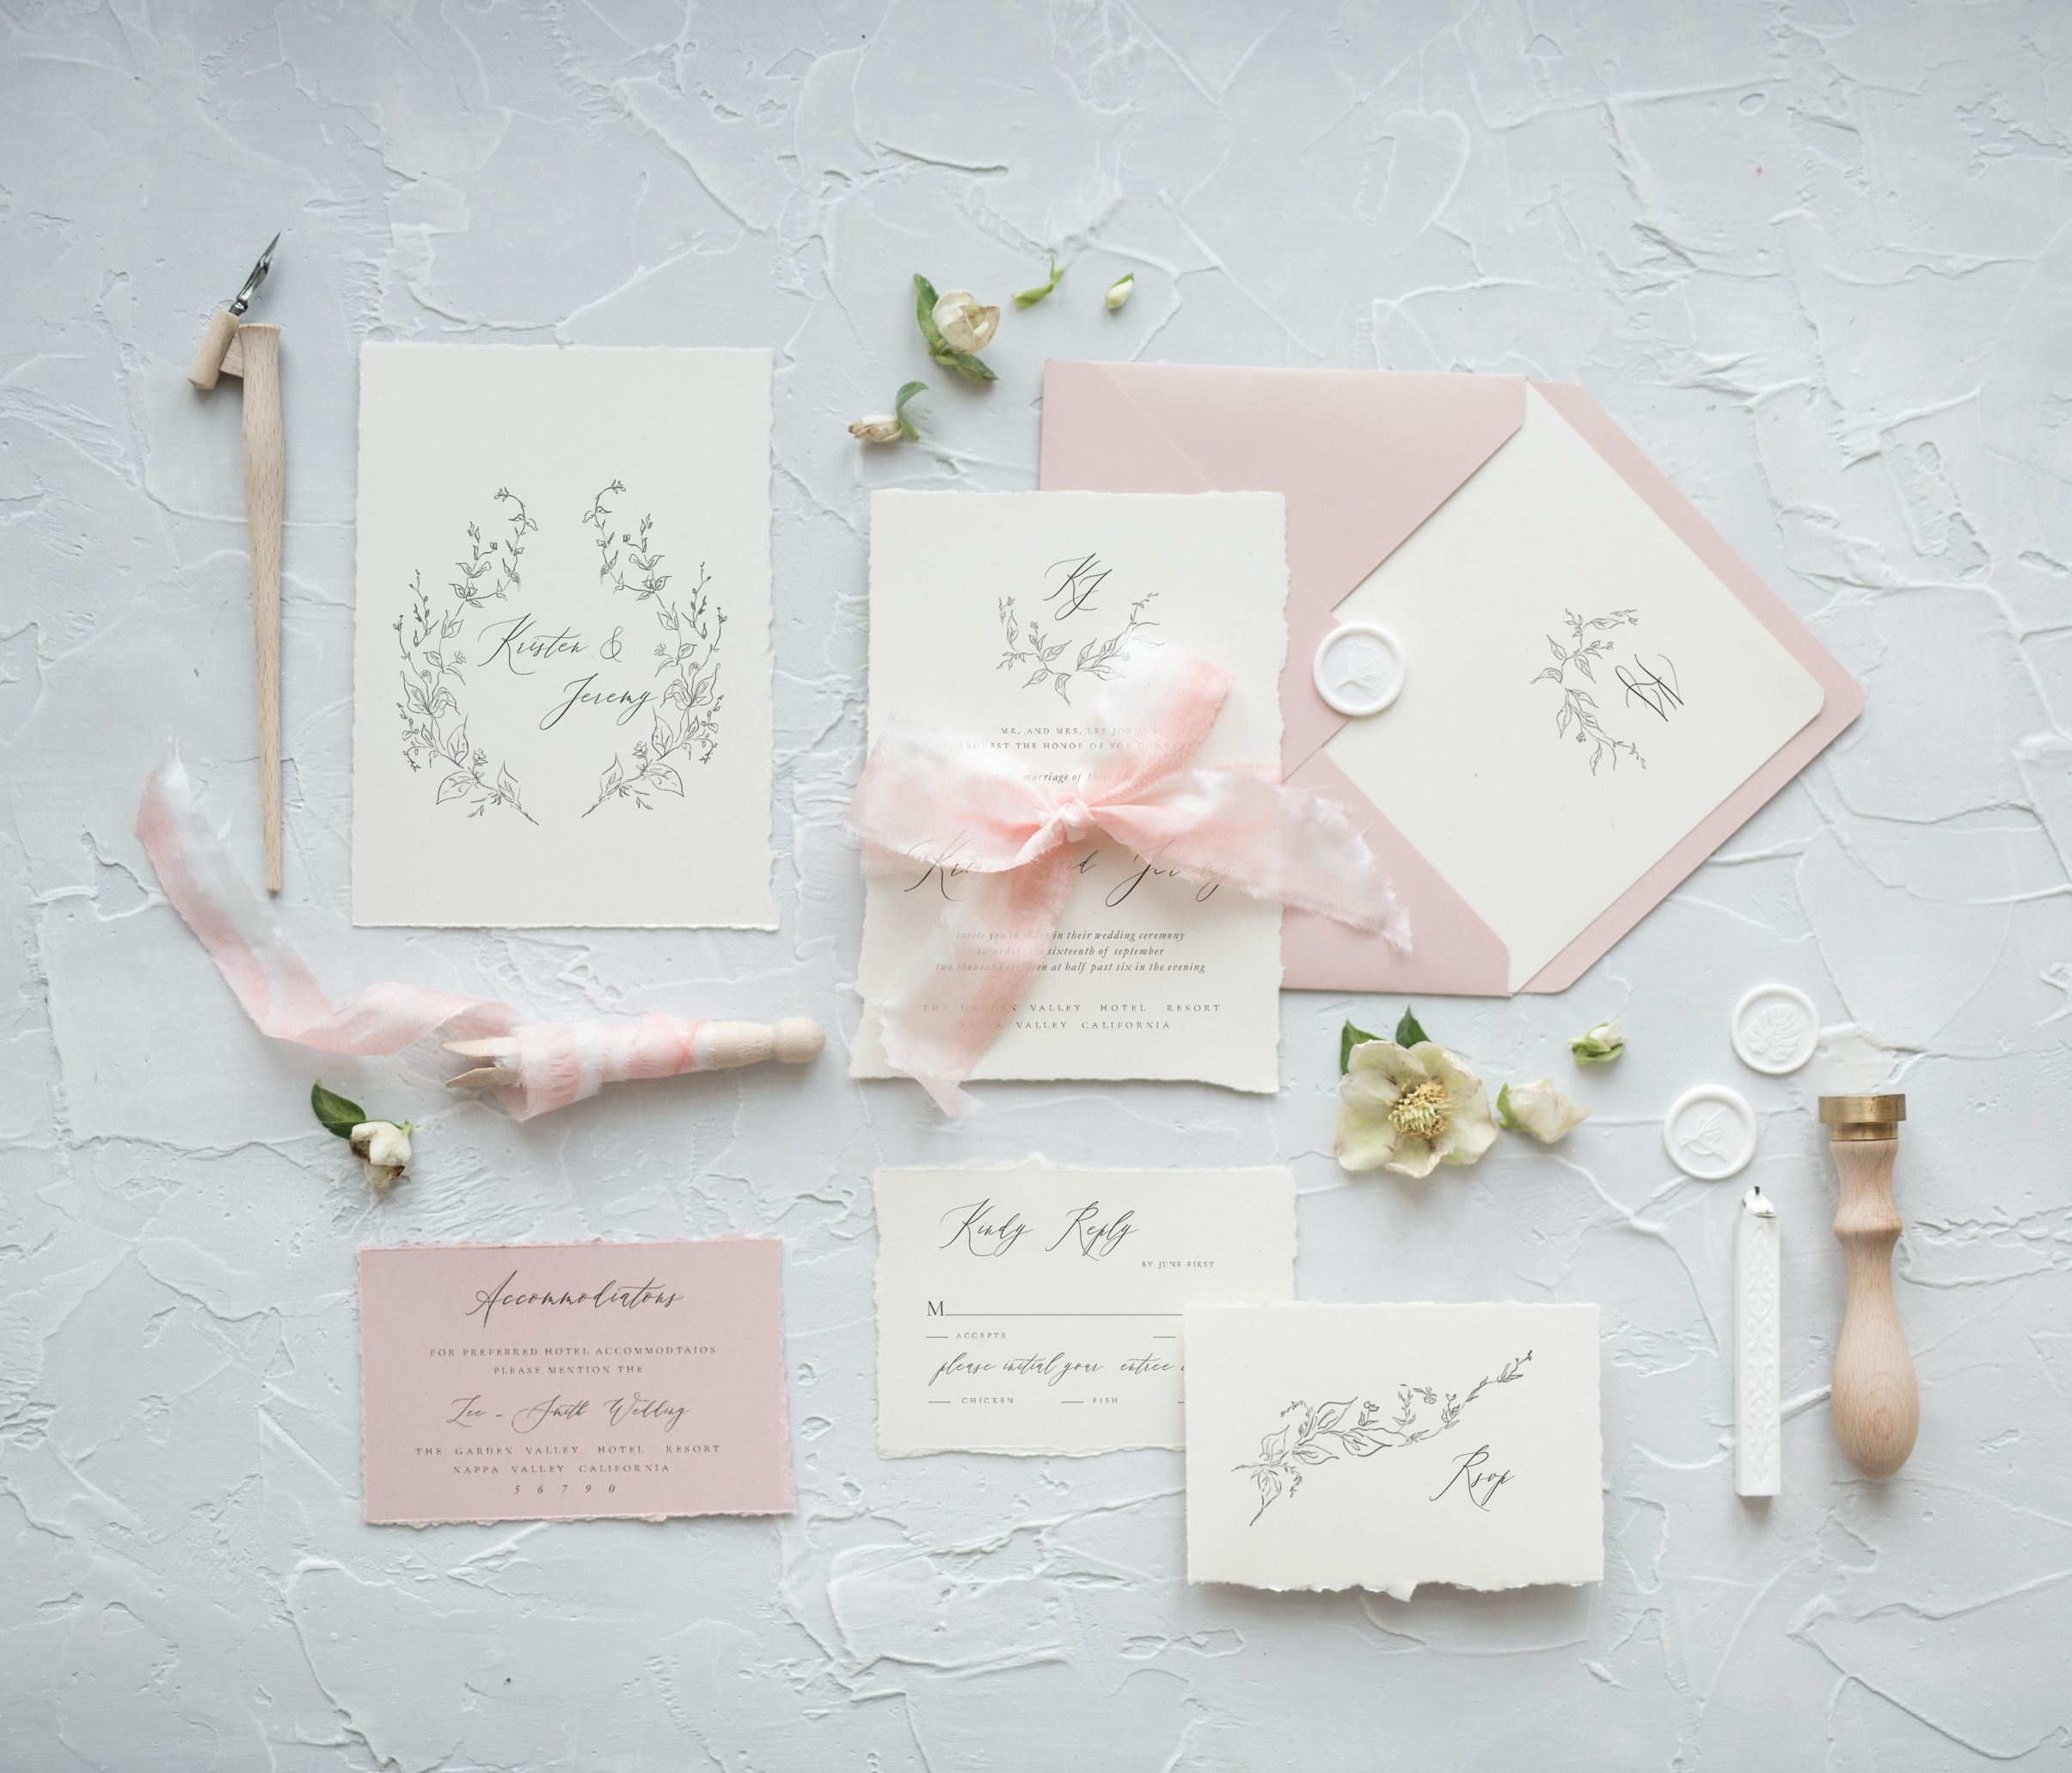 WEDDING INVITATIONS calligraphy | Beautiful wedding invitations ...